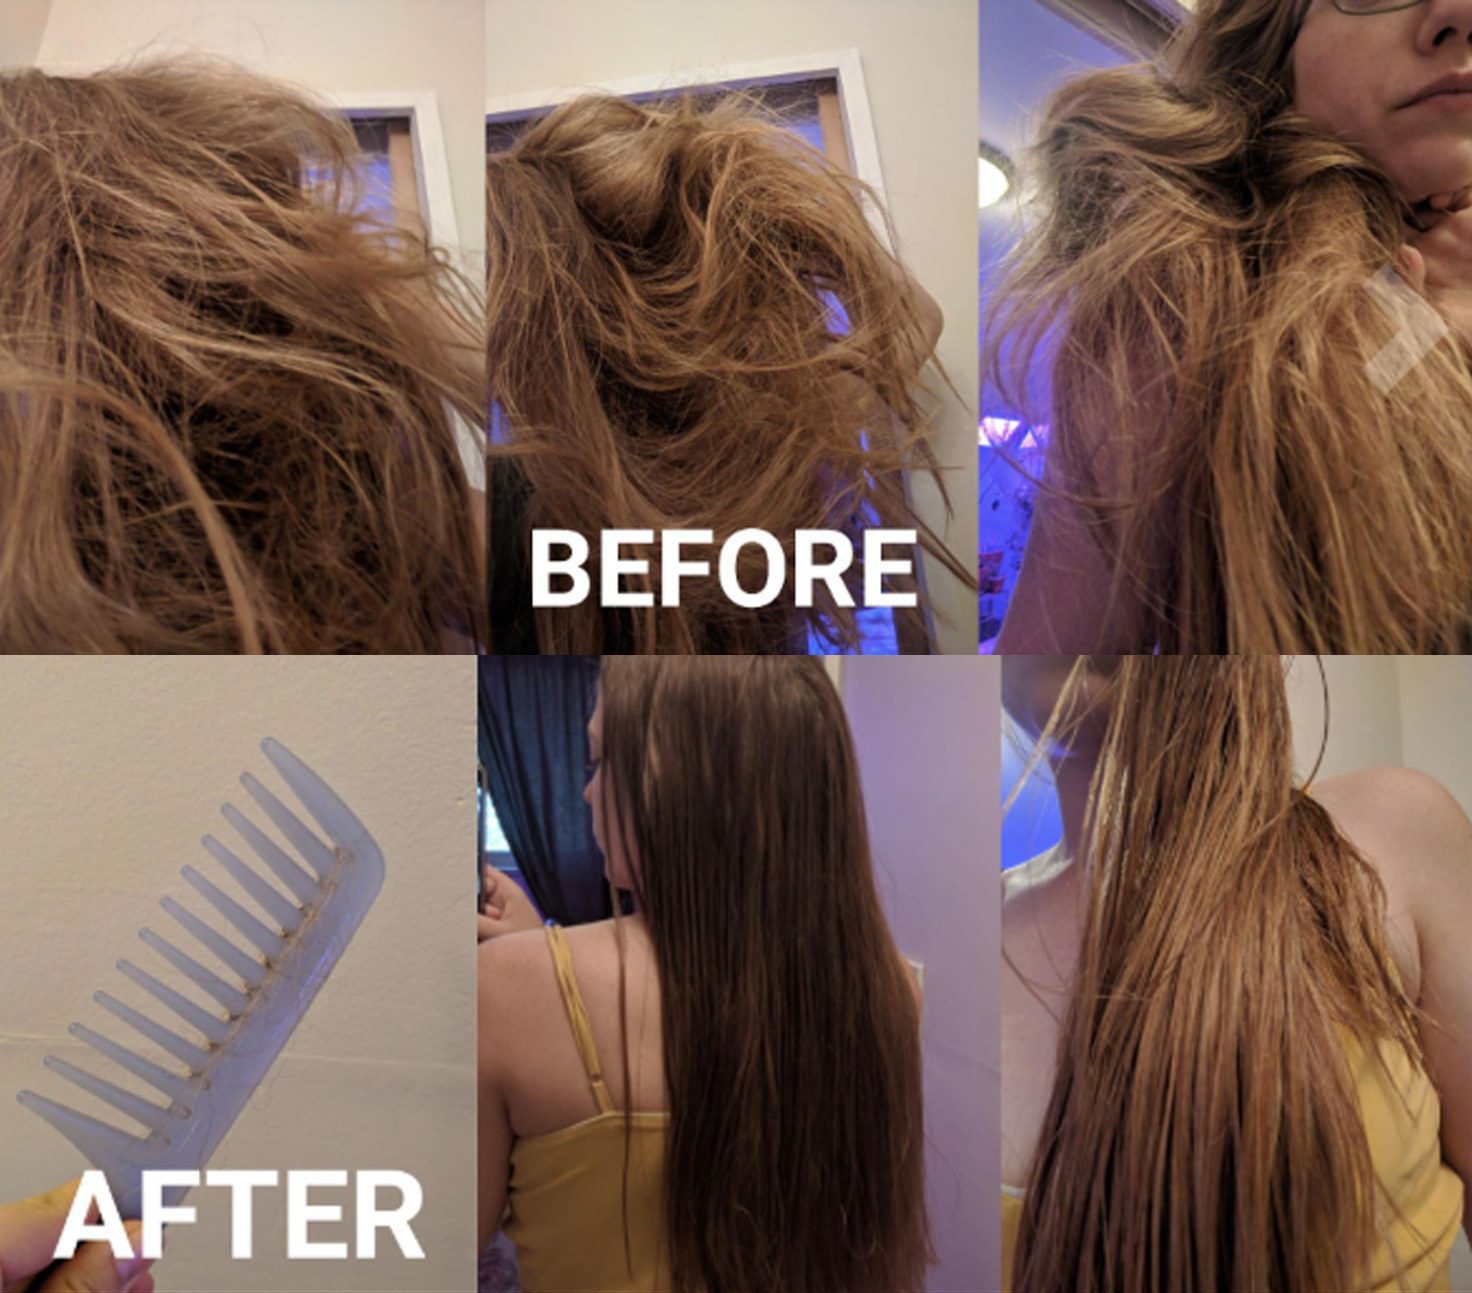 13 Products For People Who Hate Tangled Hair